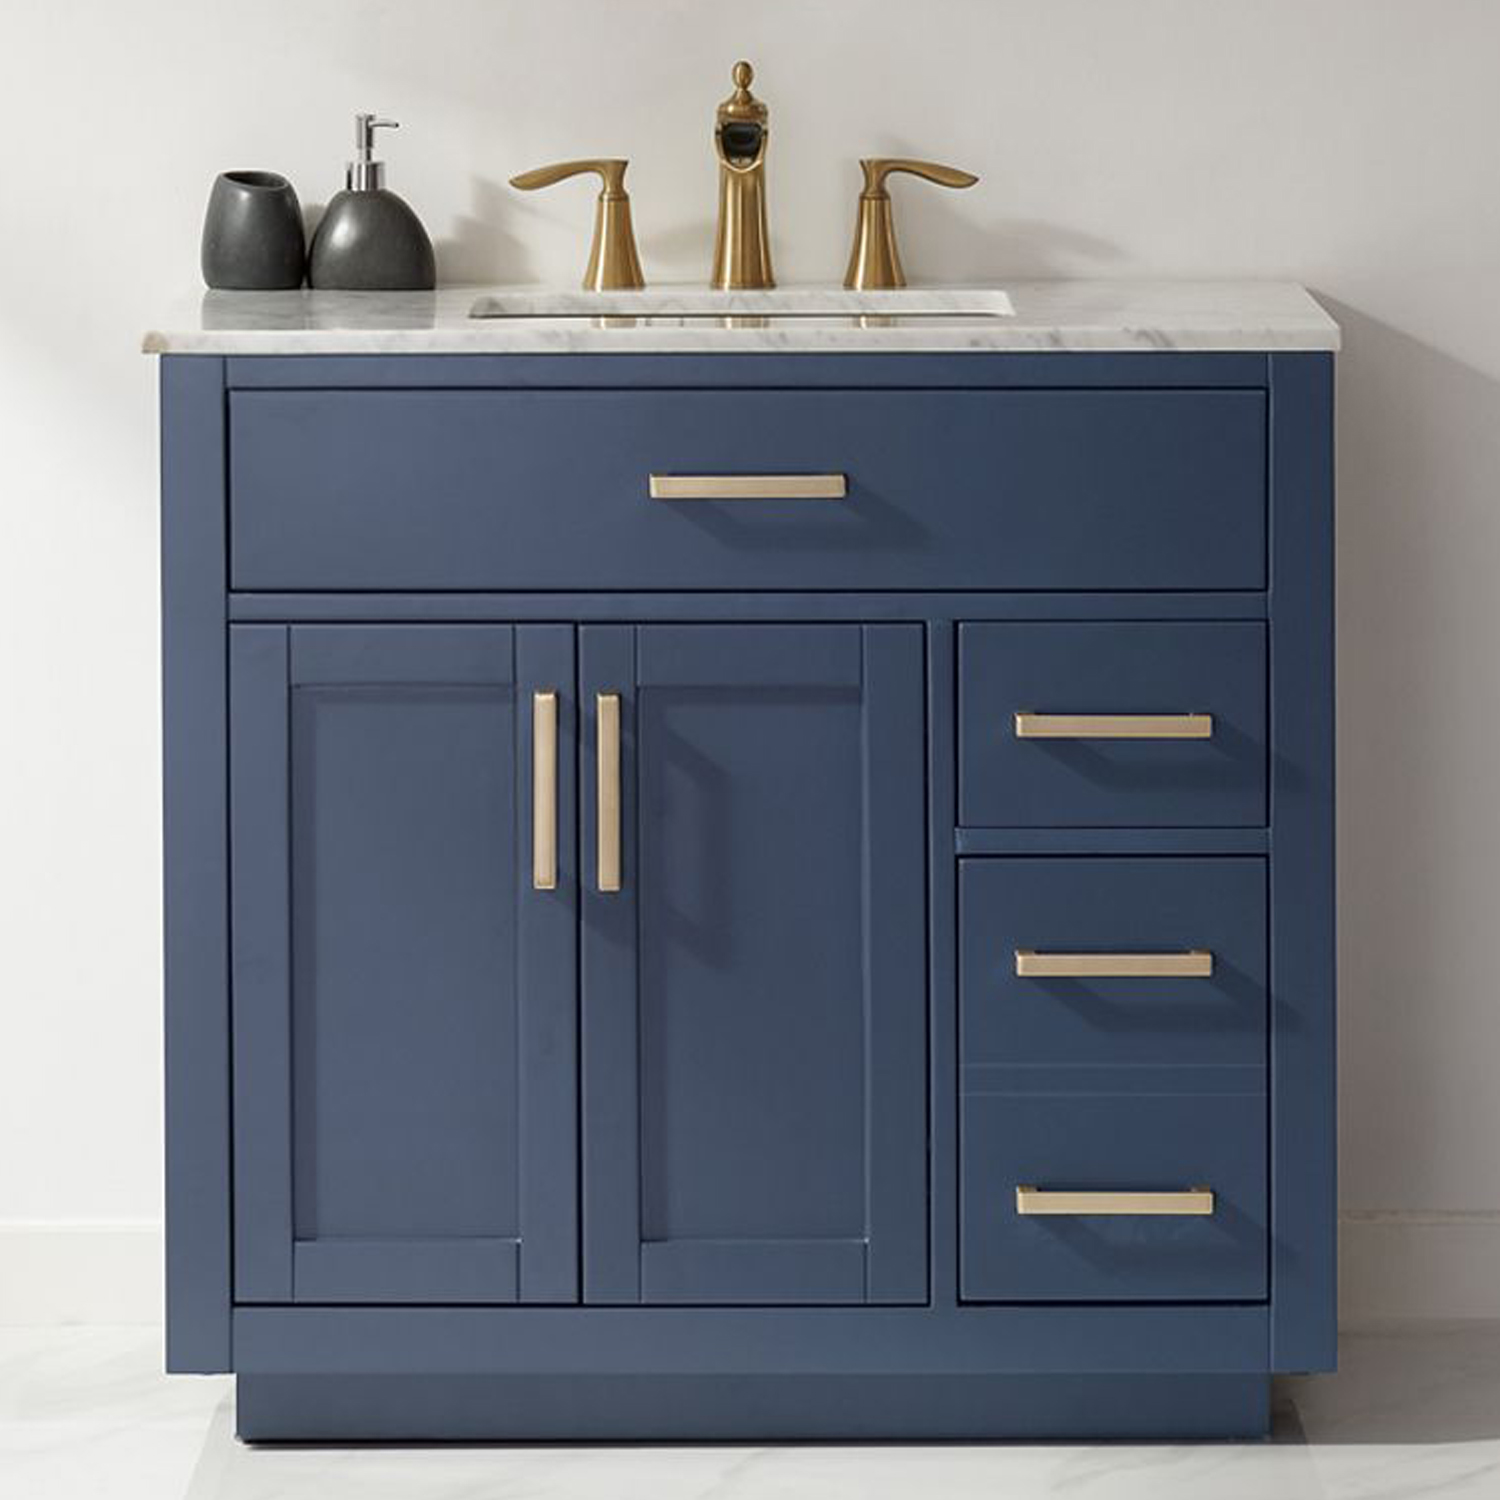 """Issac Edwards Collection 36"""" Single Bathroom Vanity Set in RoyalBlue and Carrara White Marble Countertop"""